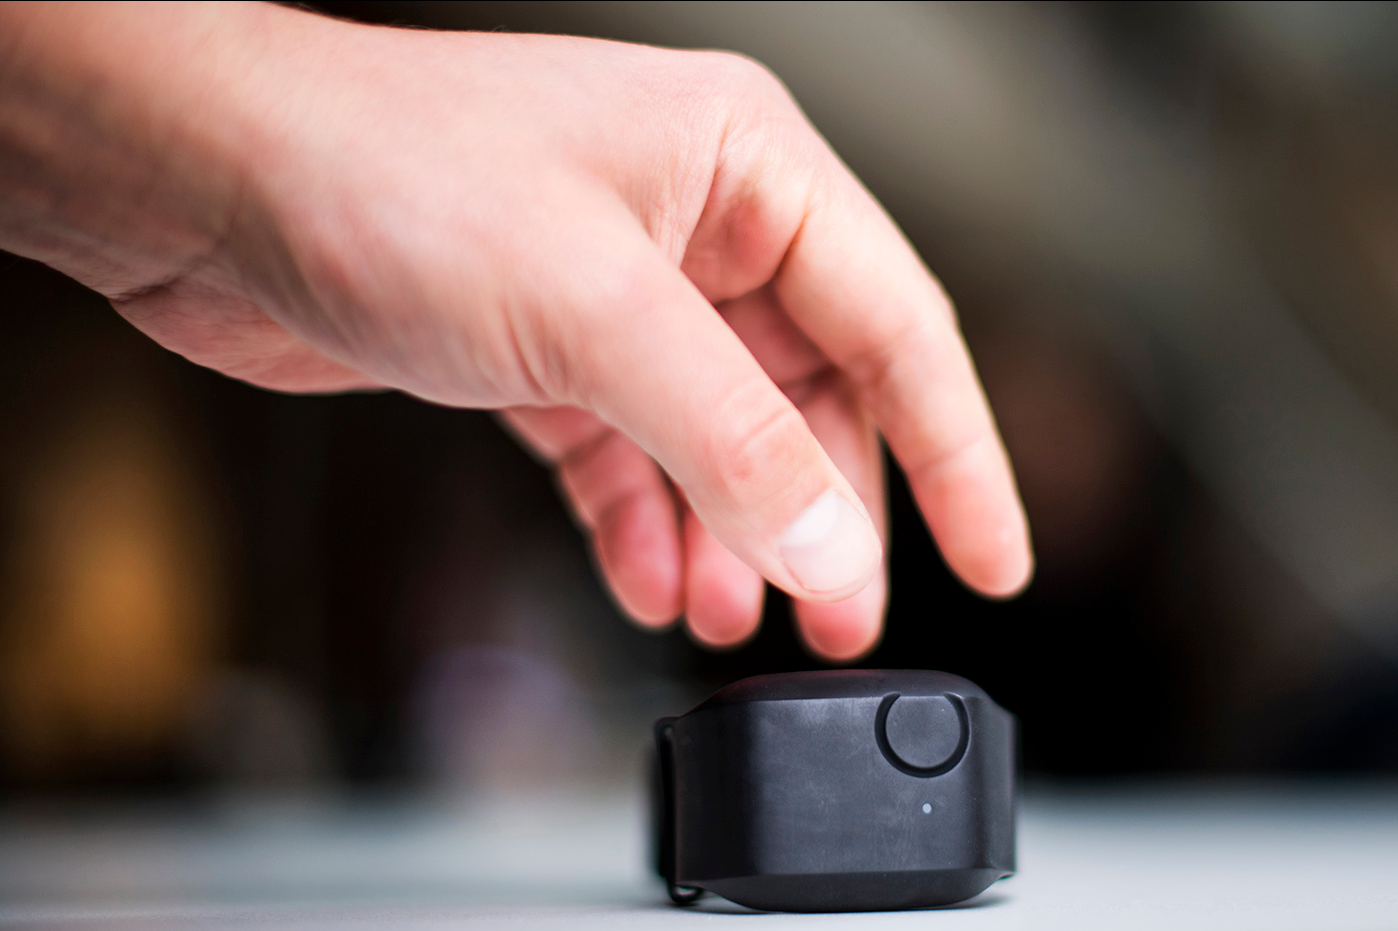 Wearable detects autism outbursts 60 seconds in advance